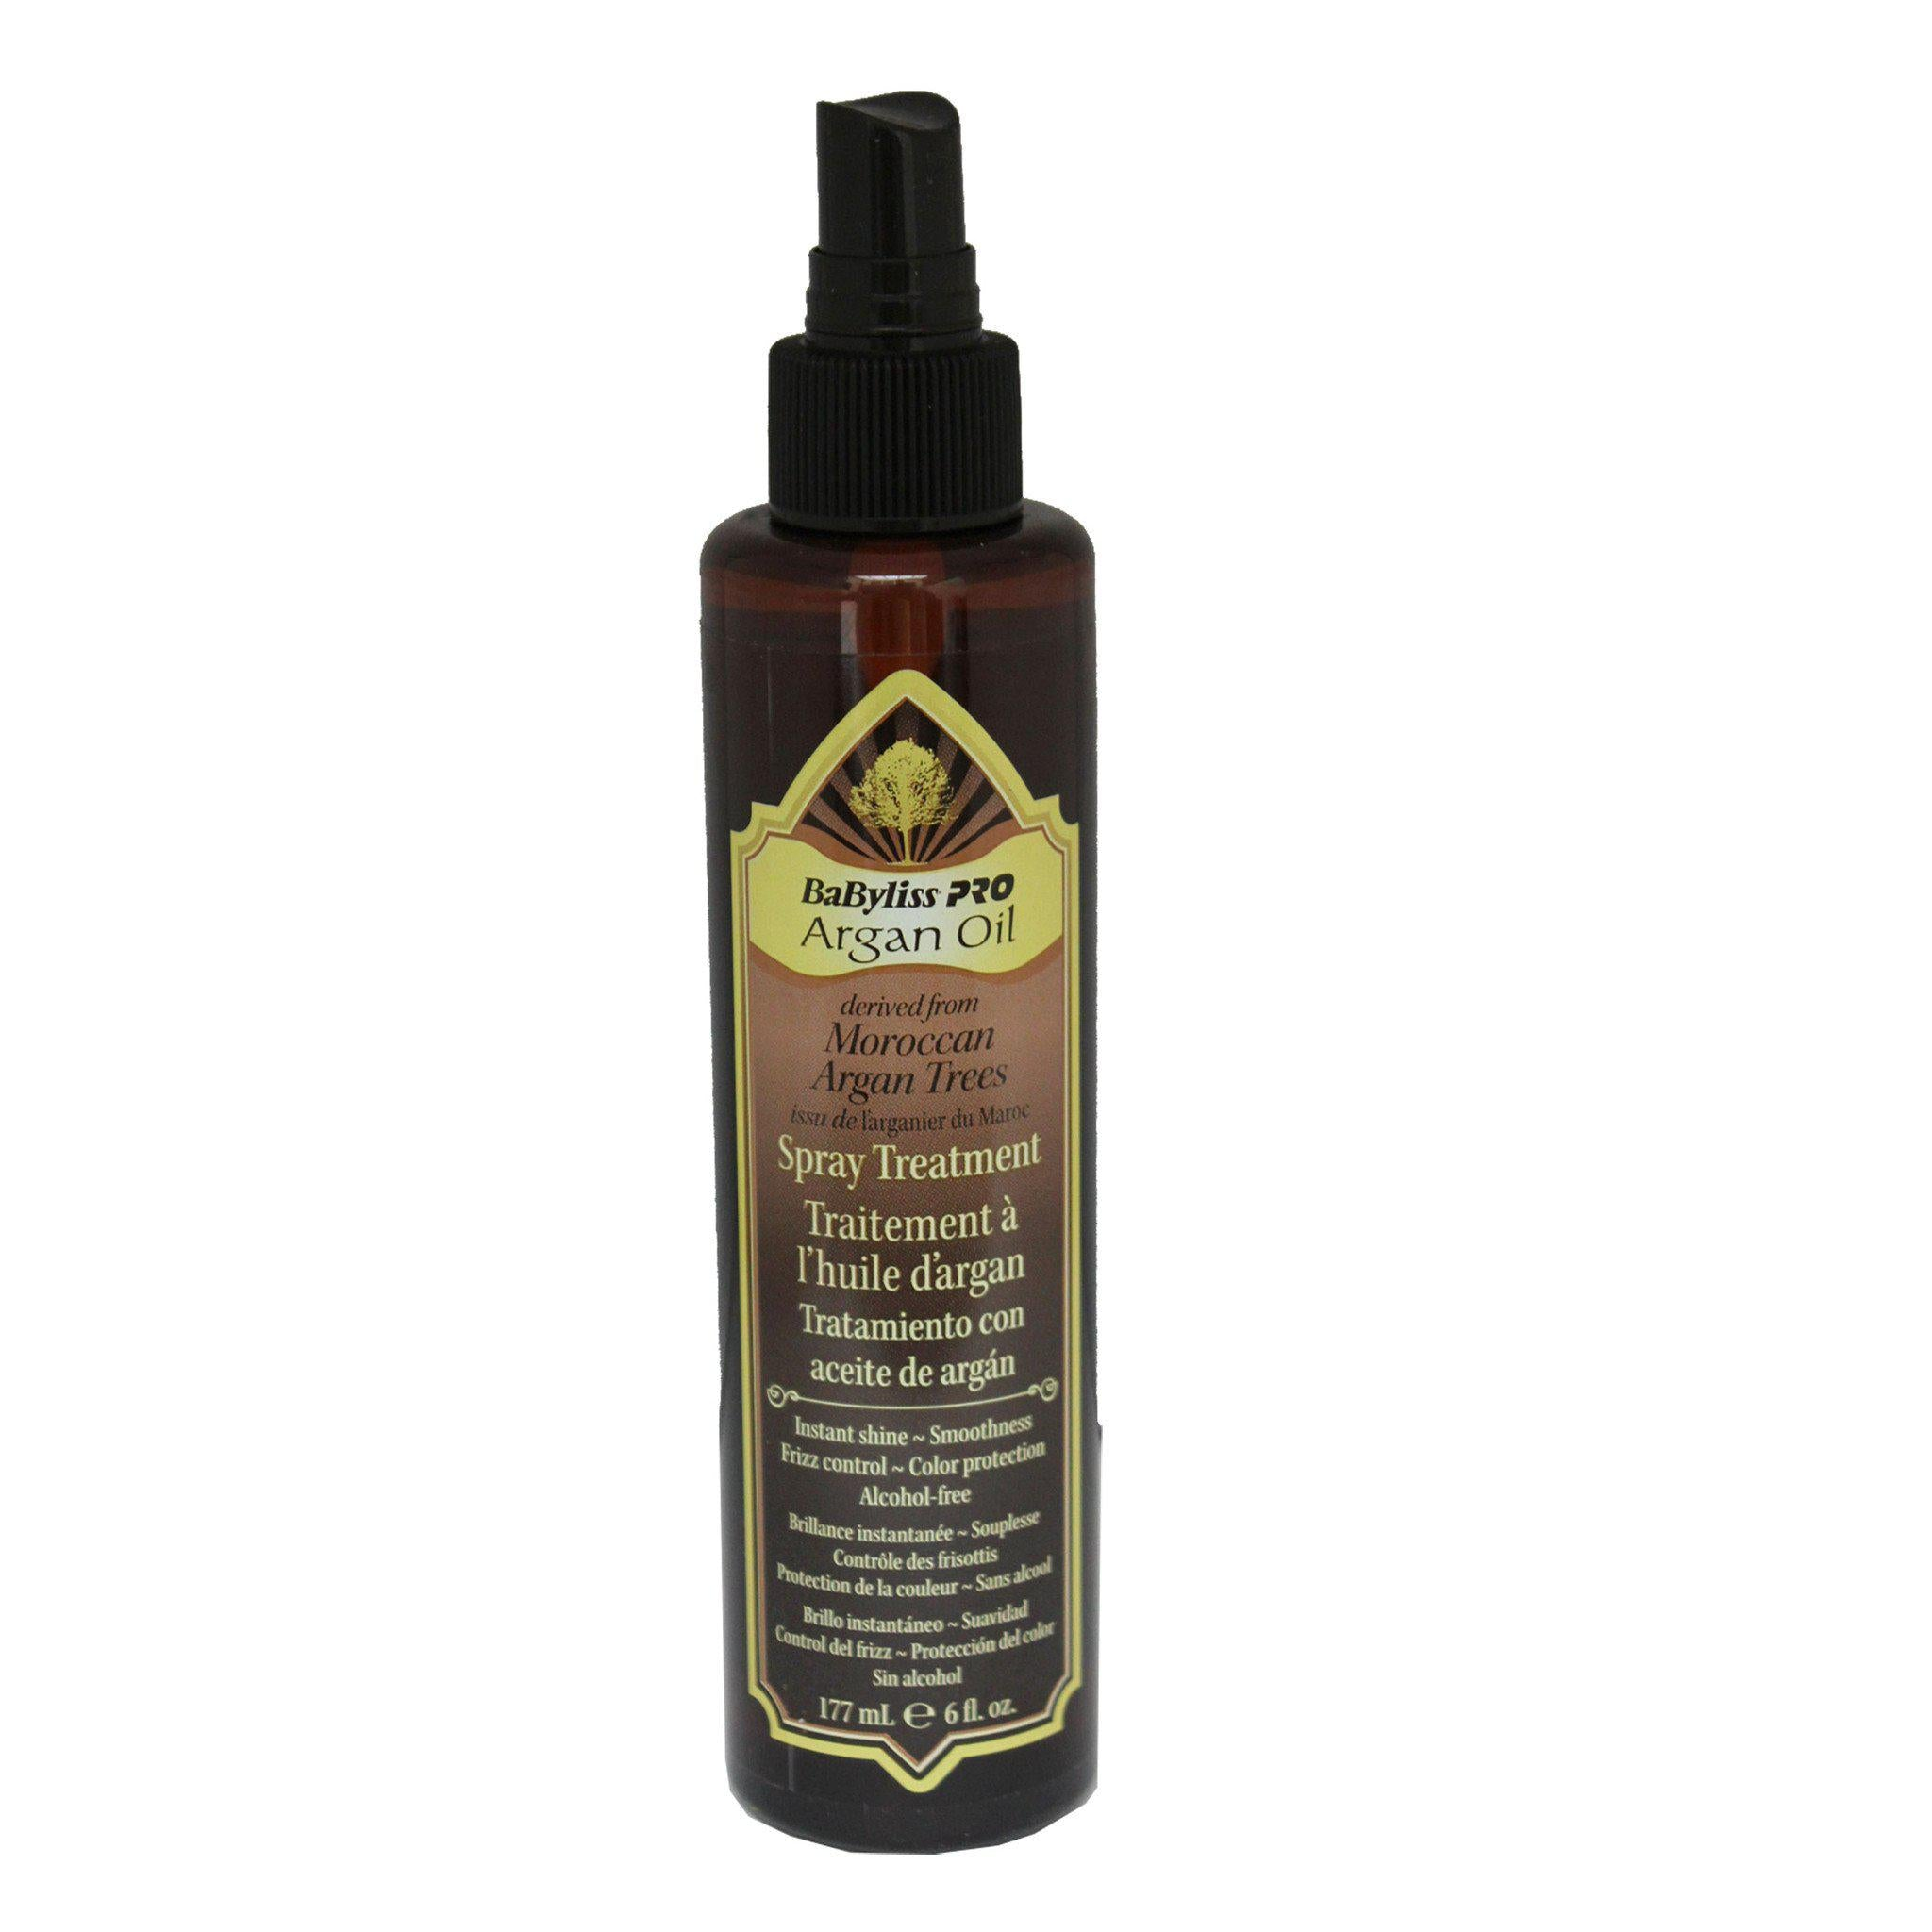 TRATAMIENTO  SPRAY  BAOILST6 BA 177ML  ARGAN